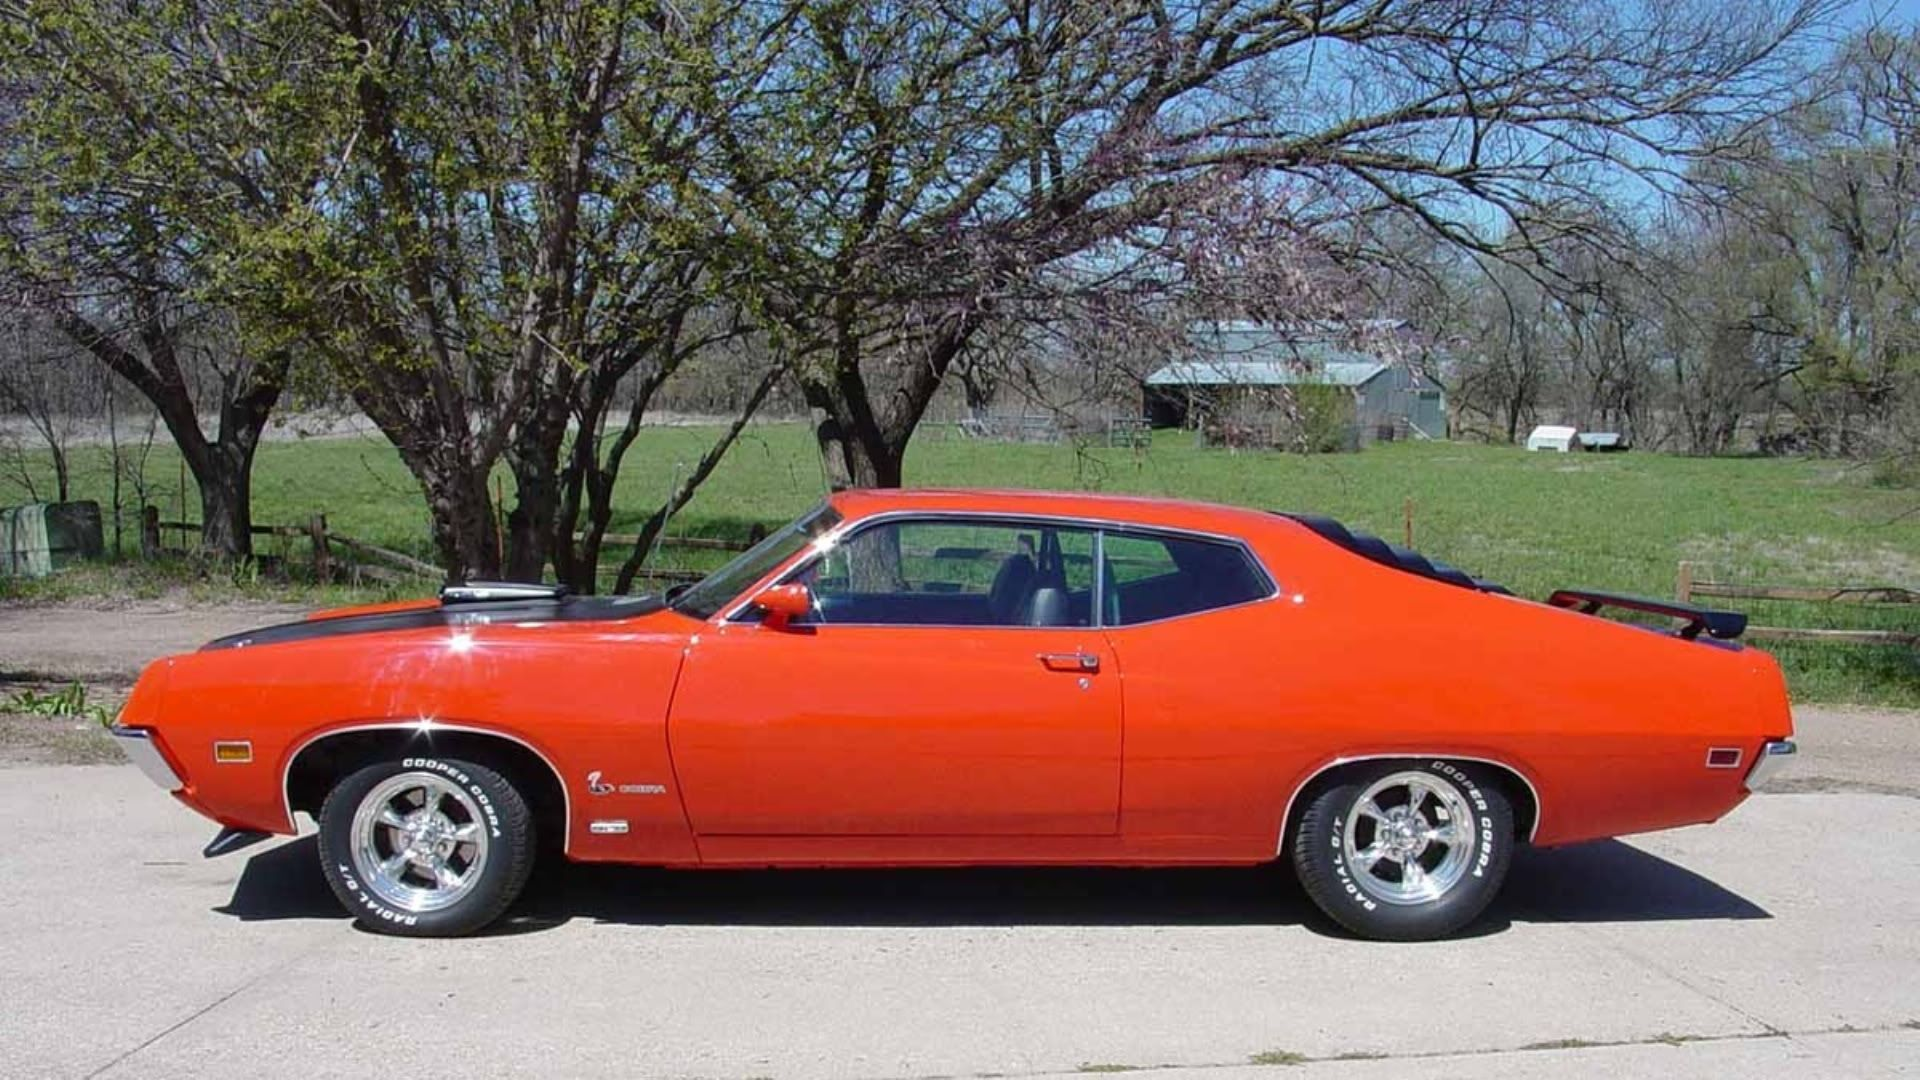 1970 Ford Torino 429 Cobra Jet Ford Torino Muscle Cars Hot Rods Cars Muscle